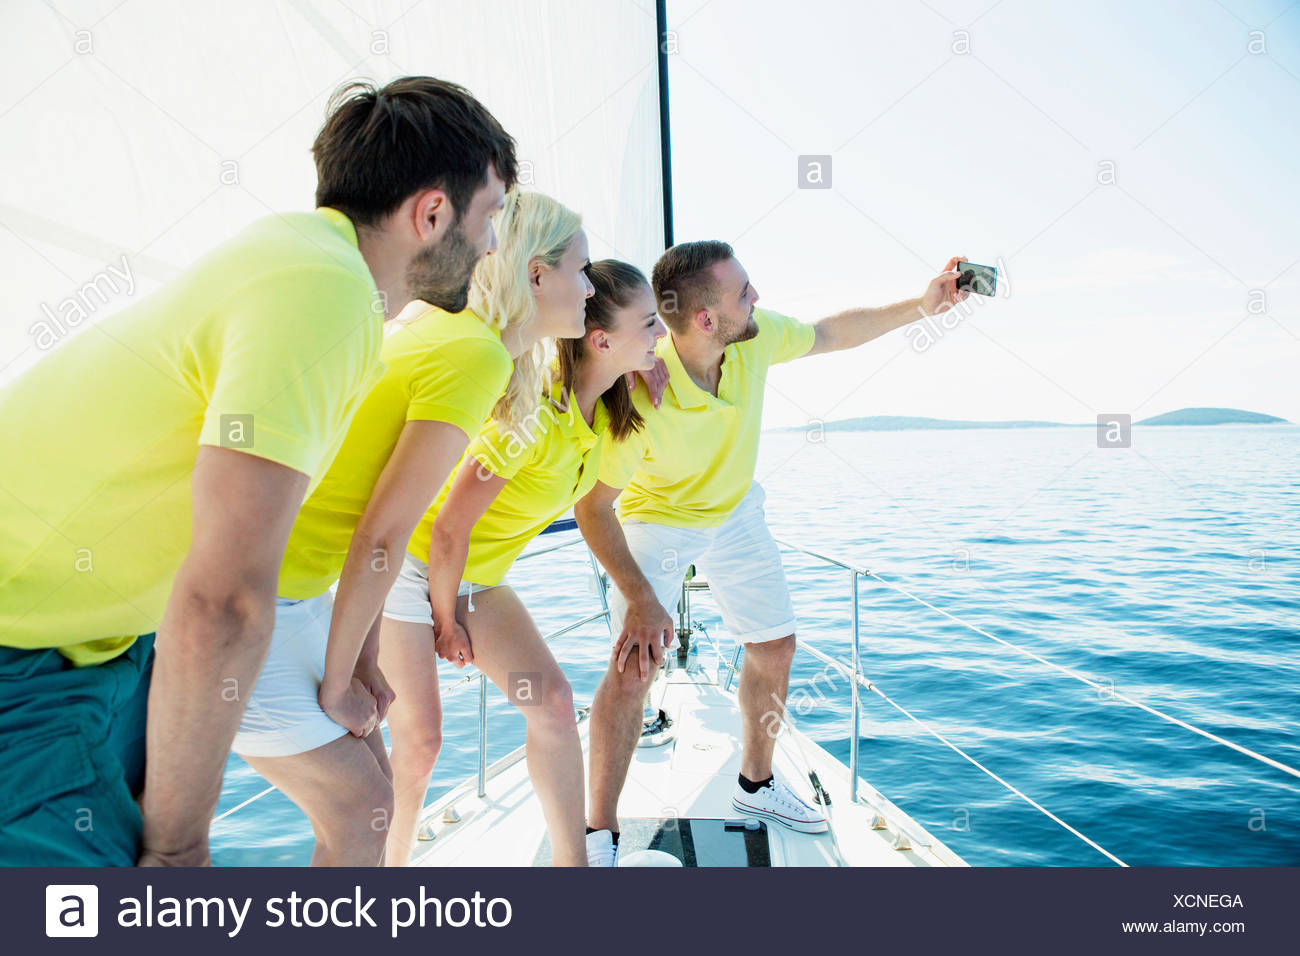 Group of friends taking pictures on sailboat, Adriatic Sea - Stock Image